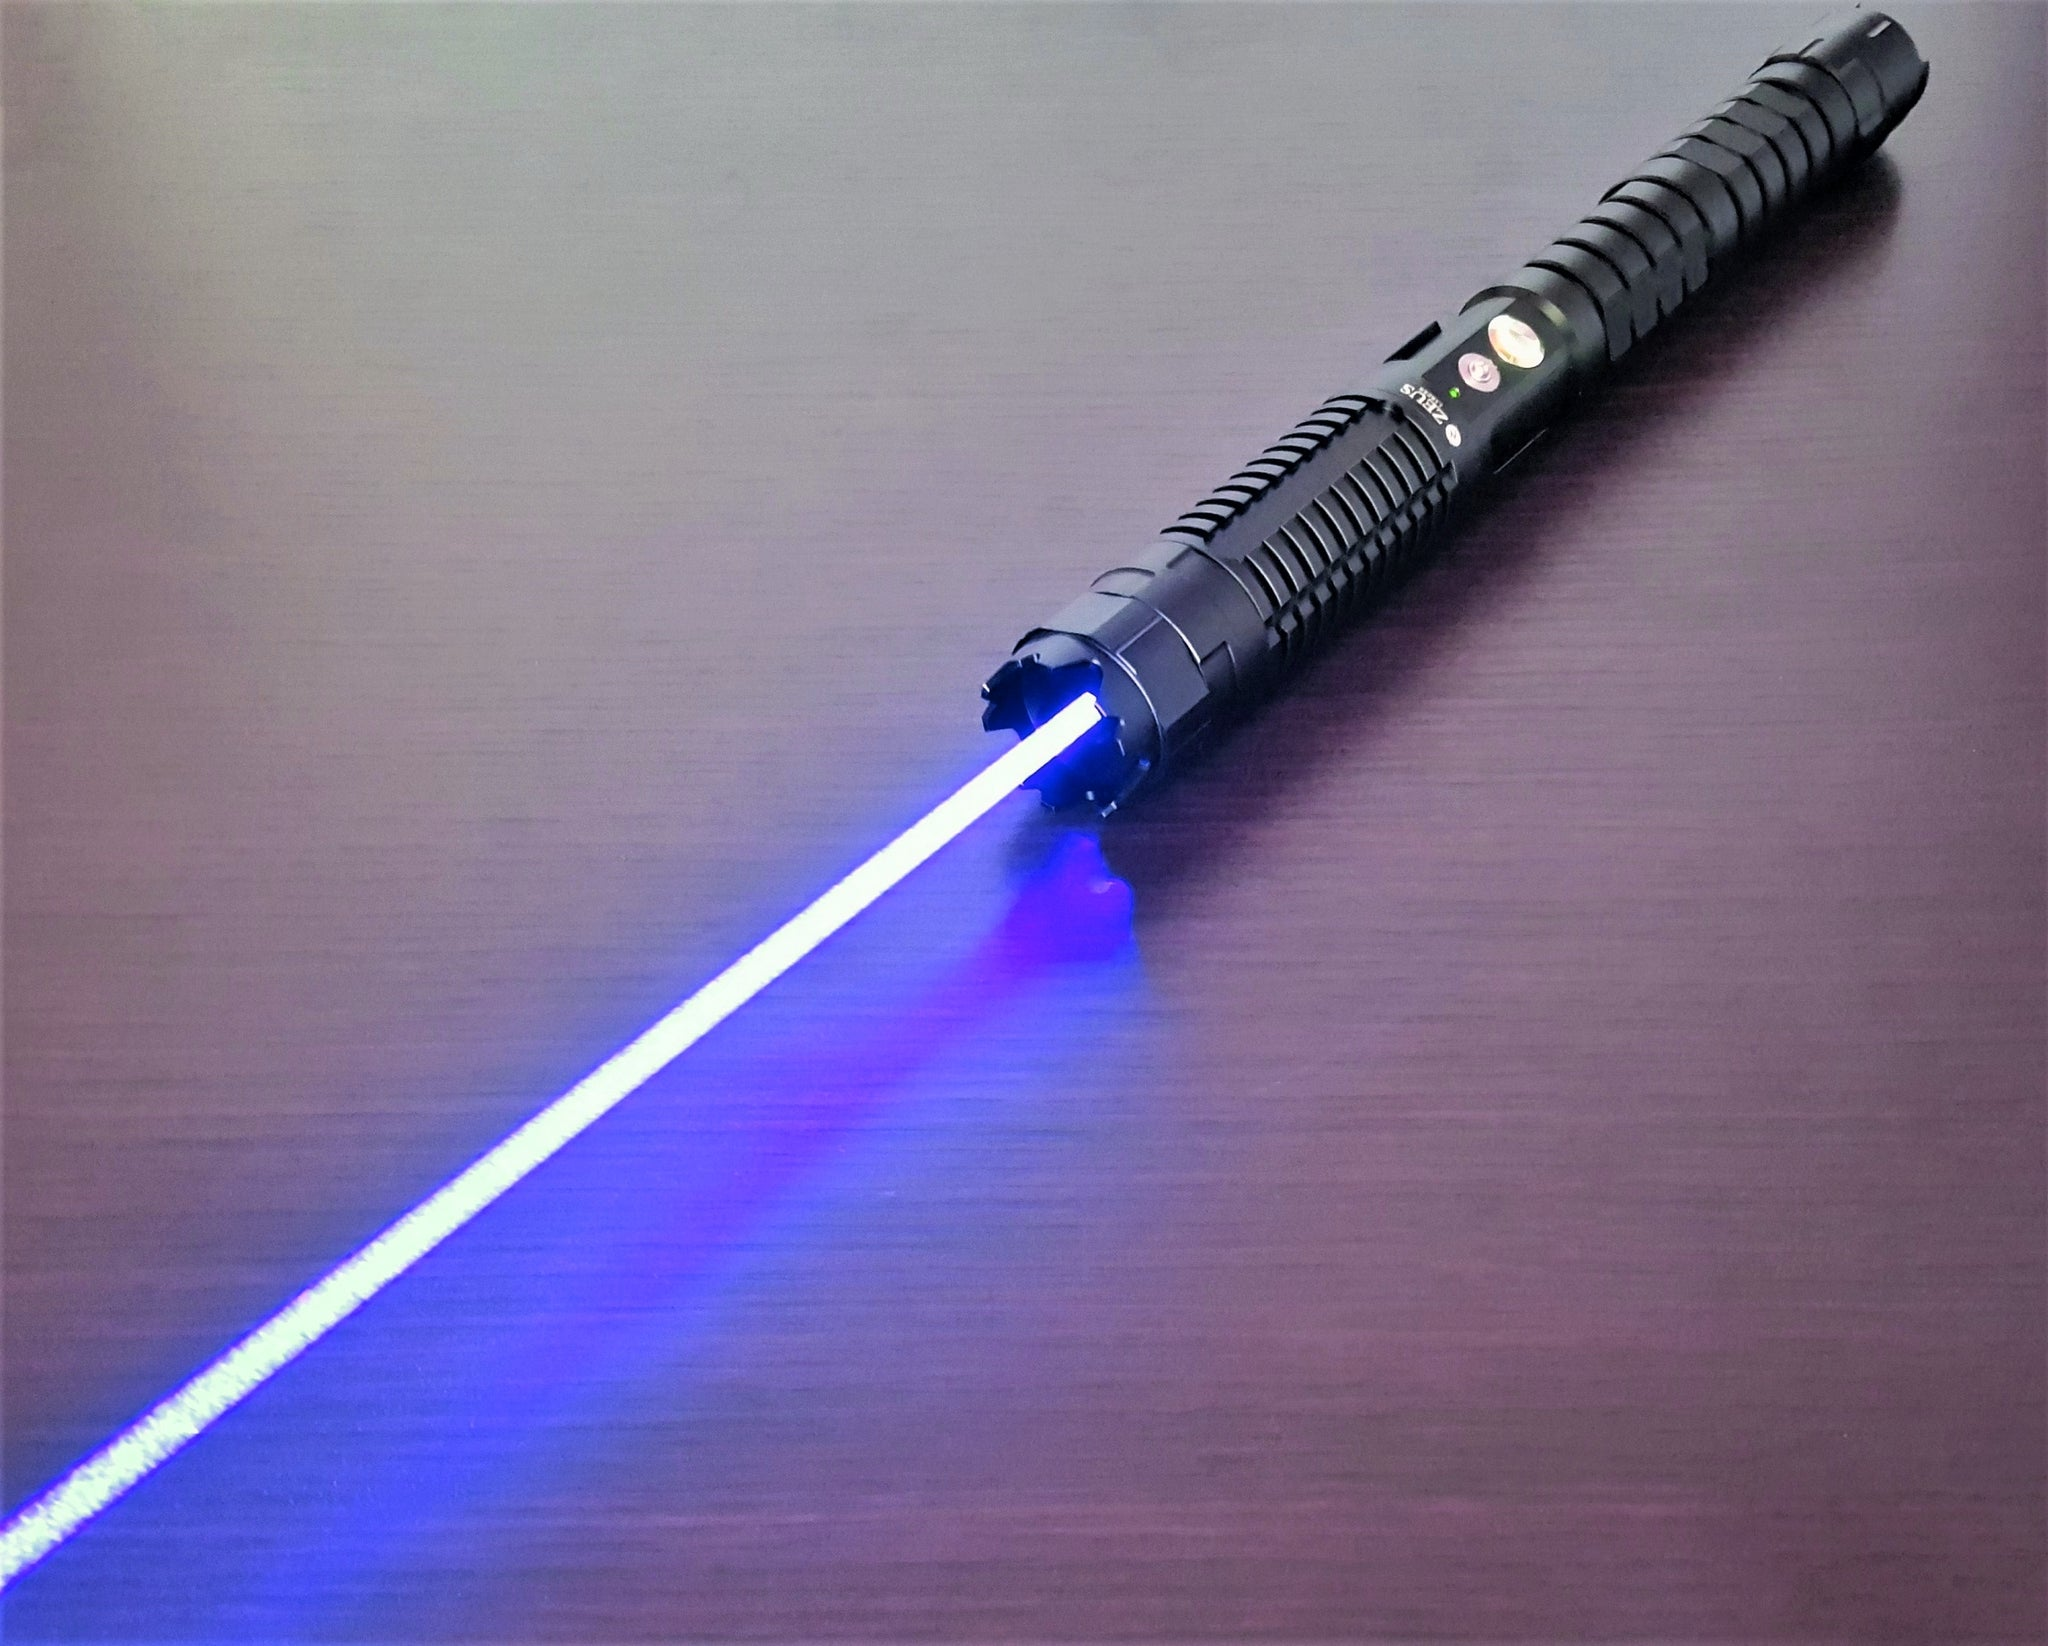 The Many Uses of Blue Laser Pointer